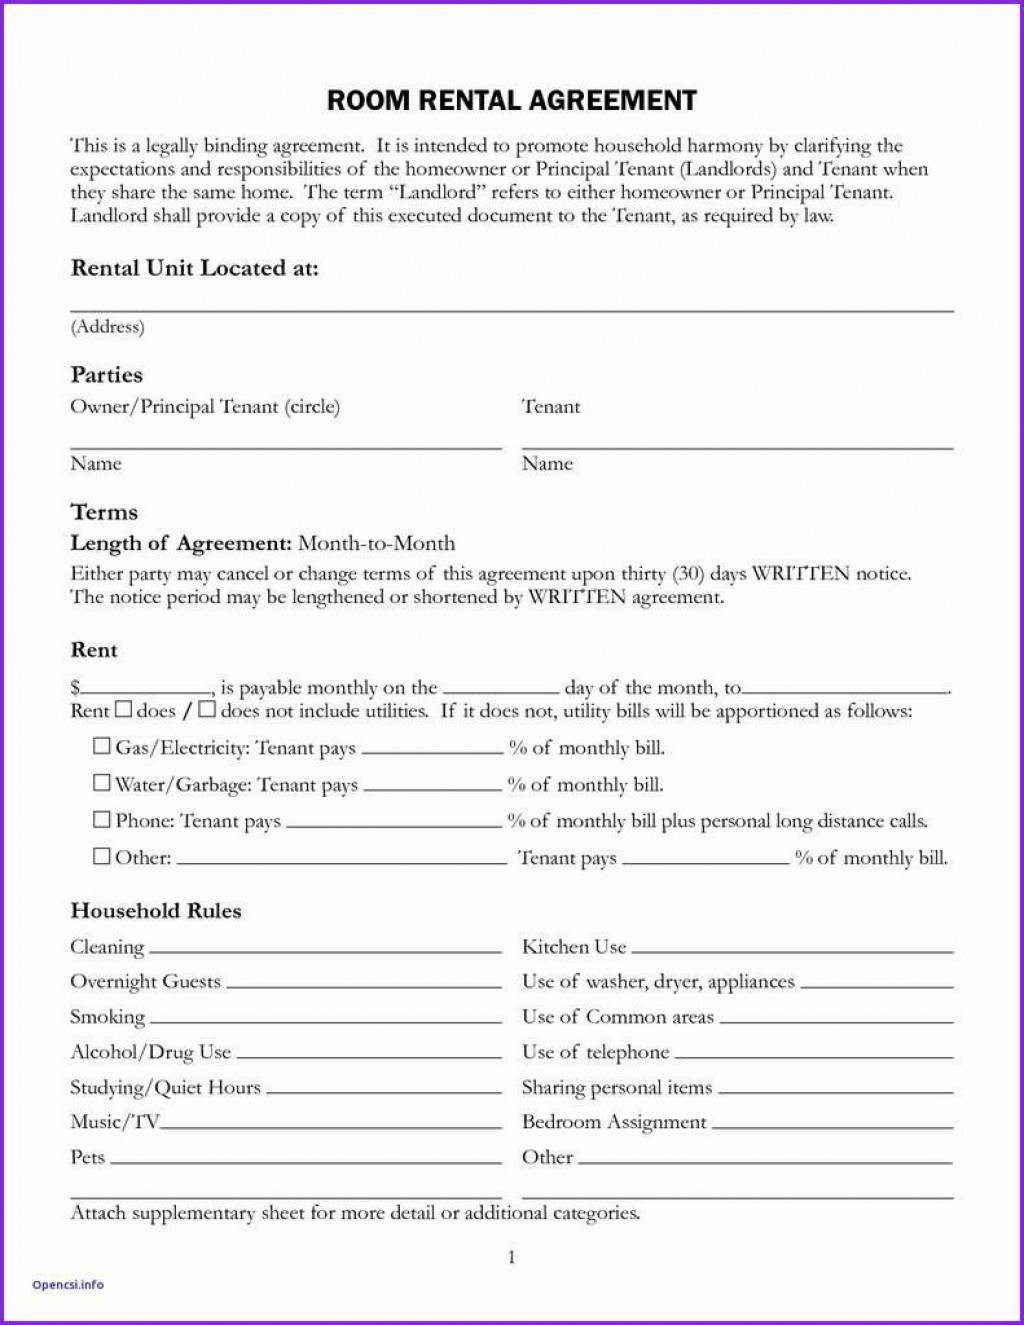 004 Archaicawful Simple Room Rental Agreement Template Design  FreeLarge